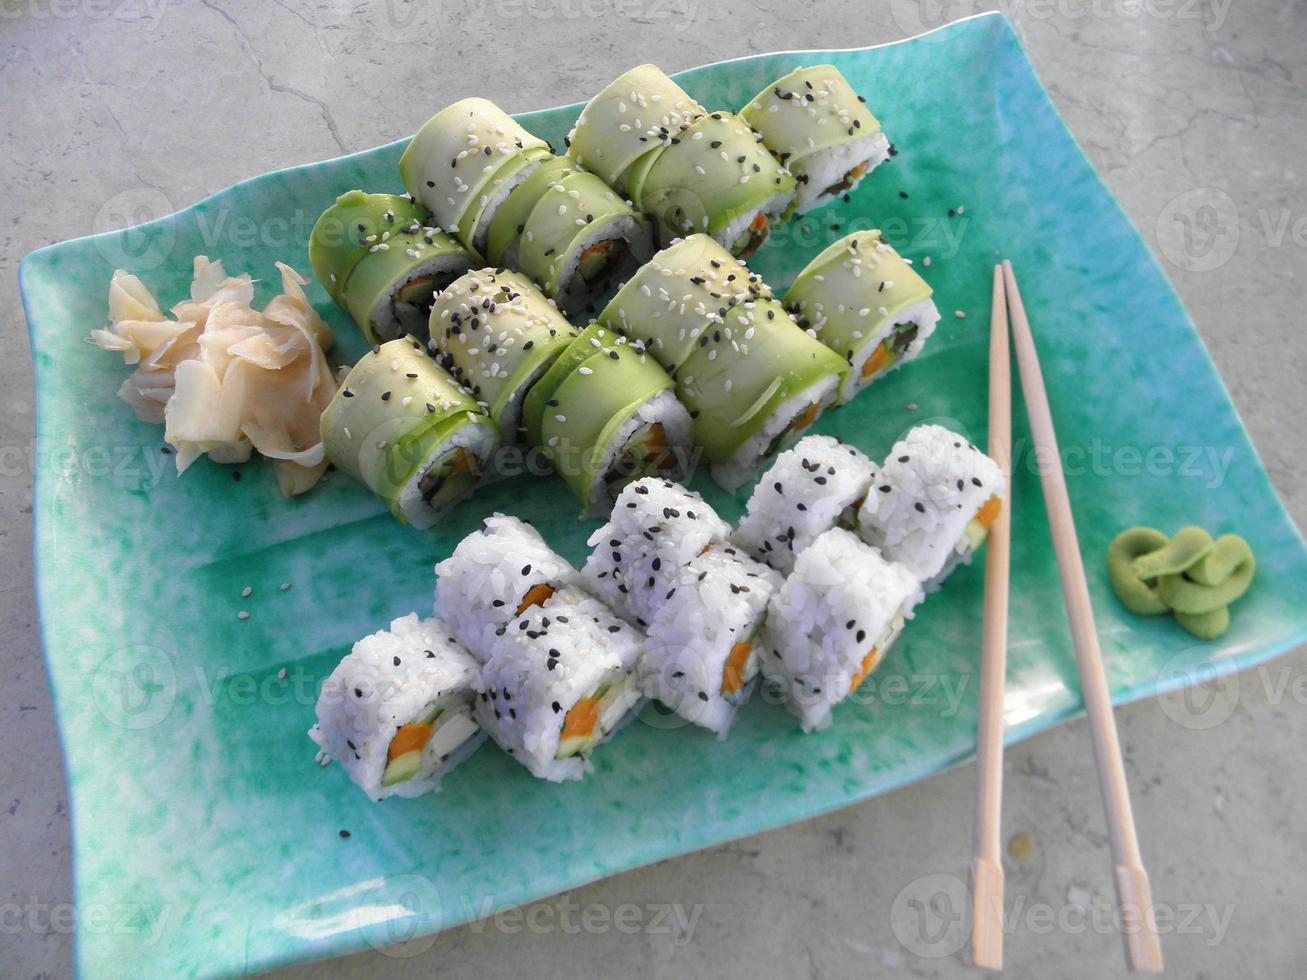 Vegetarian sushi - rolls with vegetables served with ginger and wasabi. photo